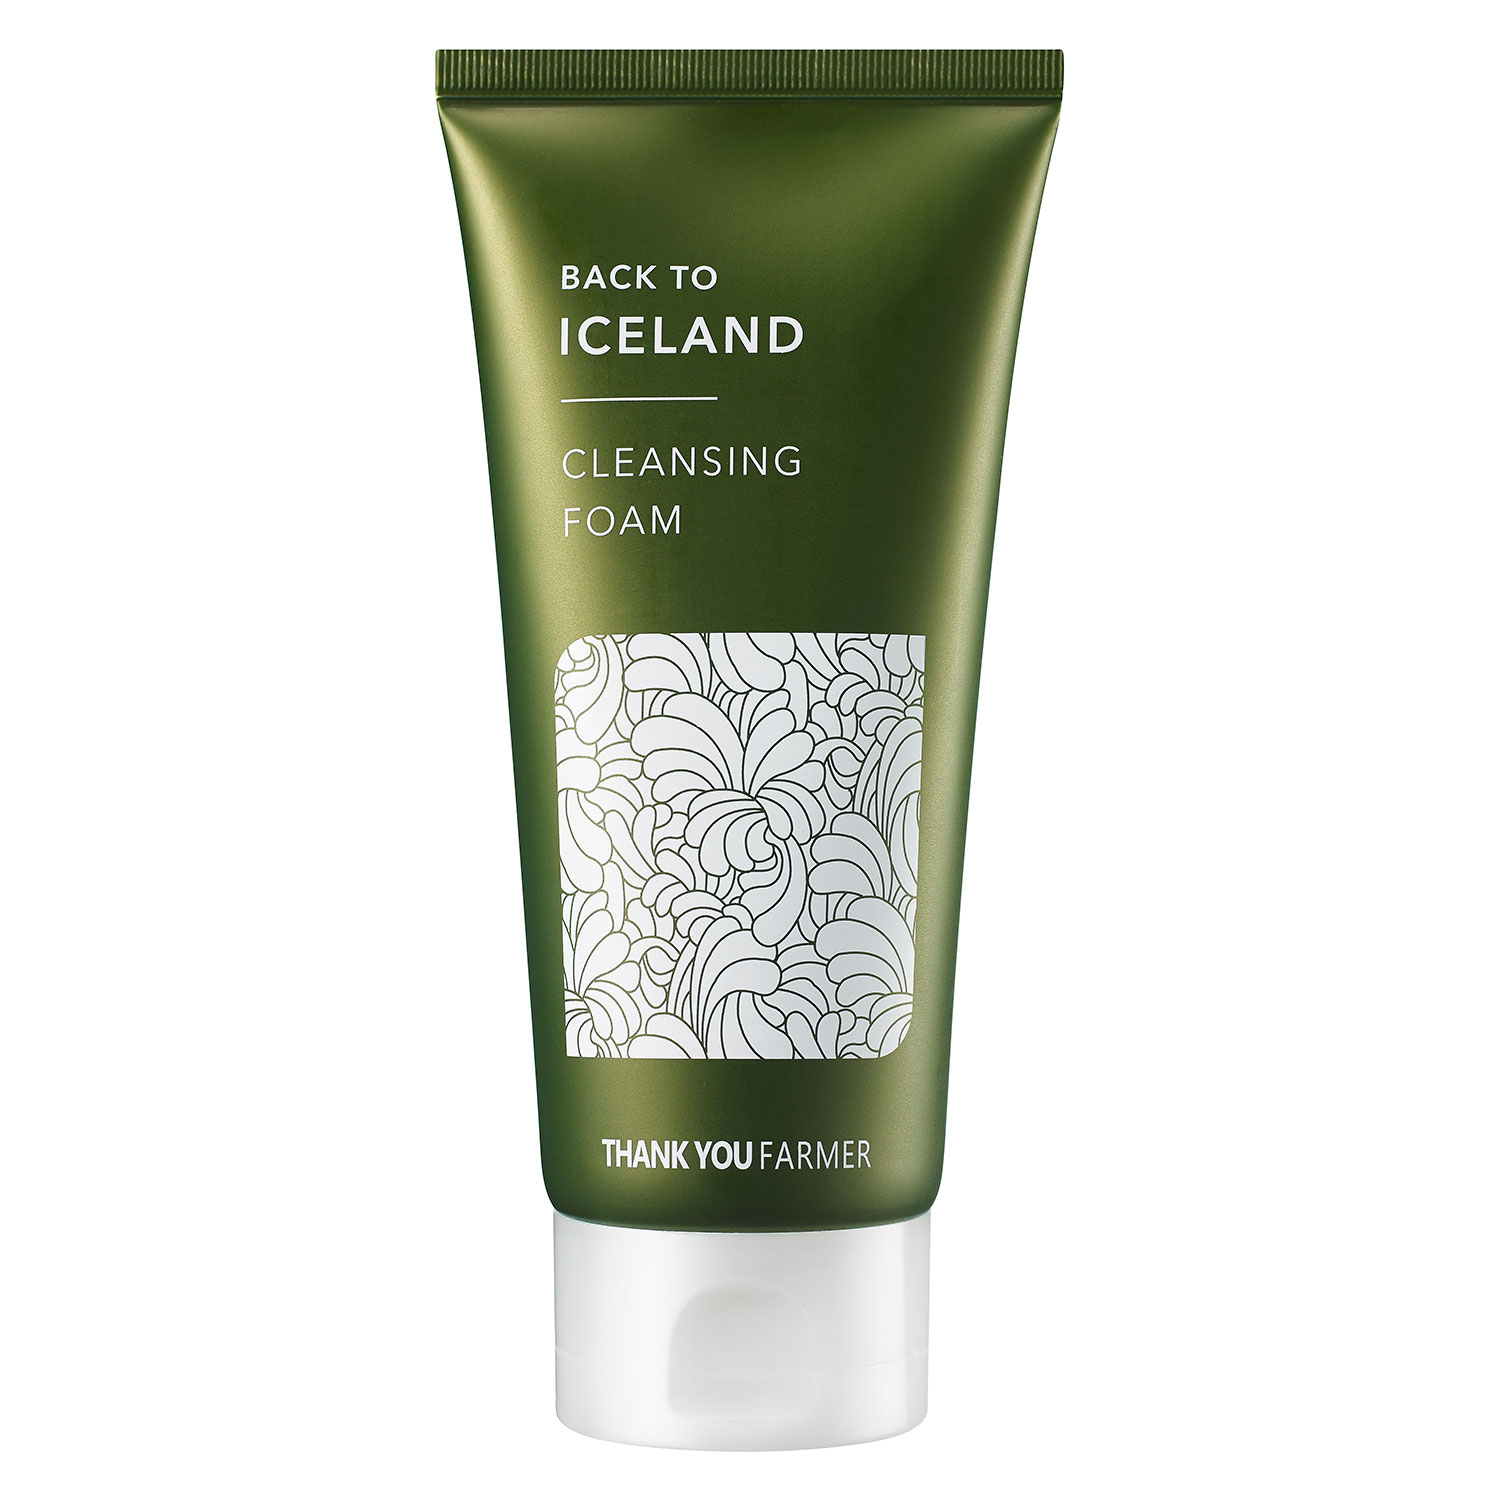 THANK YOU FARMER - Back To Iceland Cleansing Foam - 120g